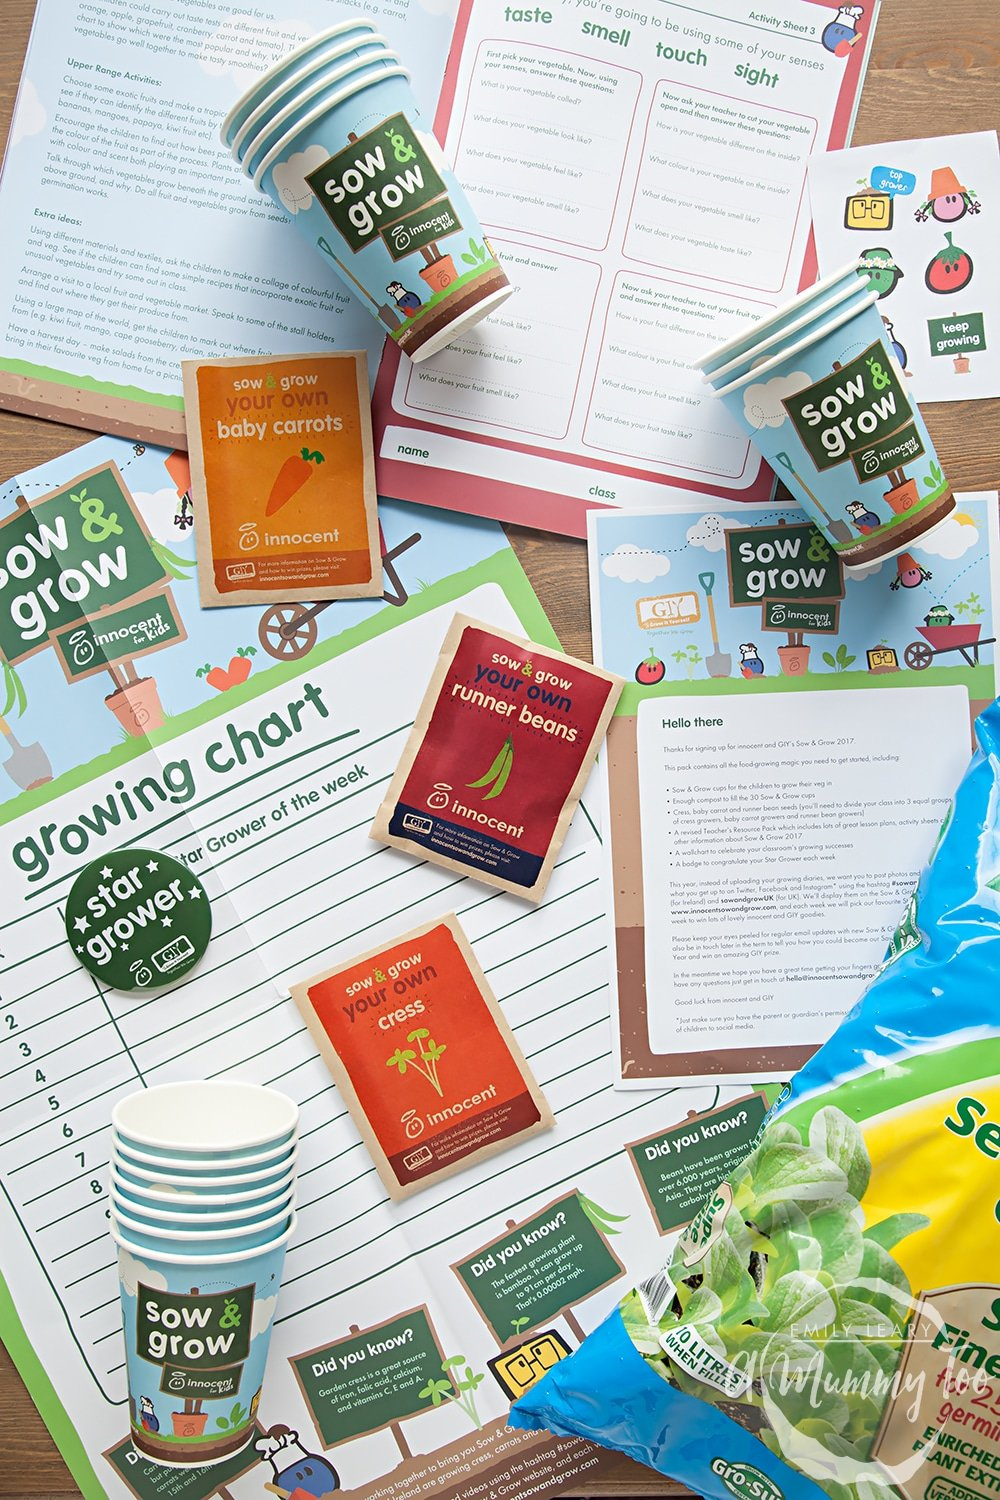 Sow & Grow, an initiative by innocent to encourage children to grow and learn about food at school and home